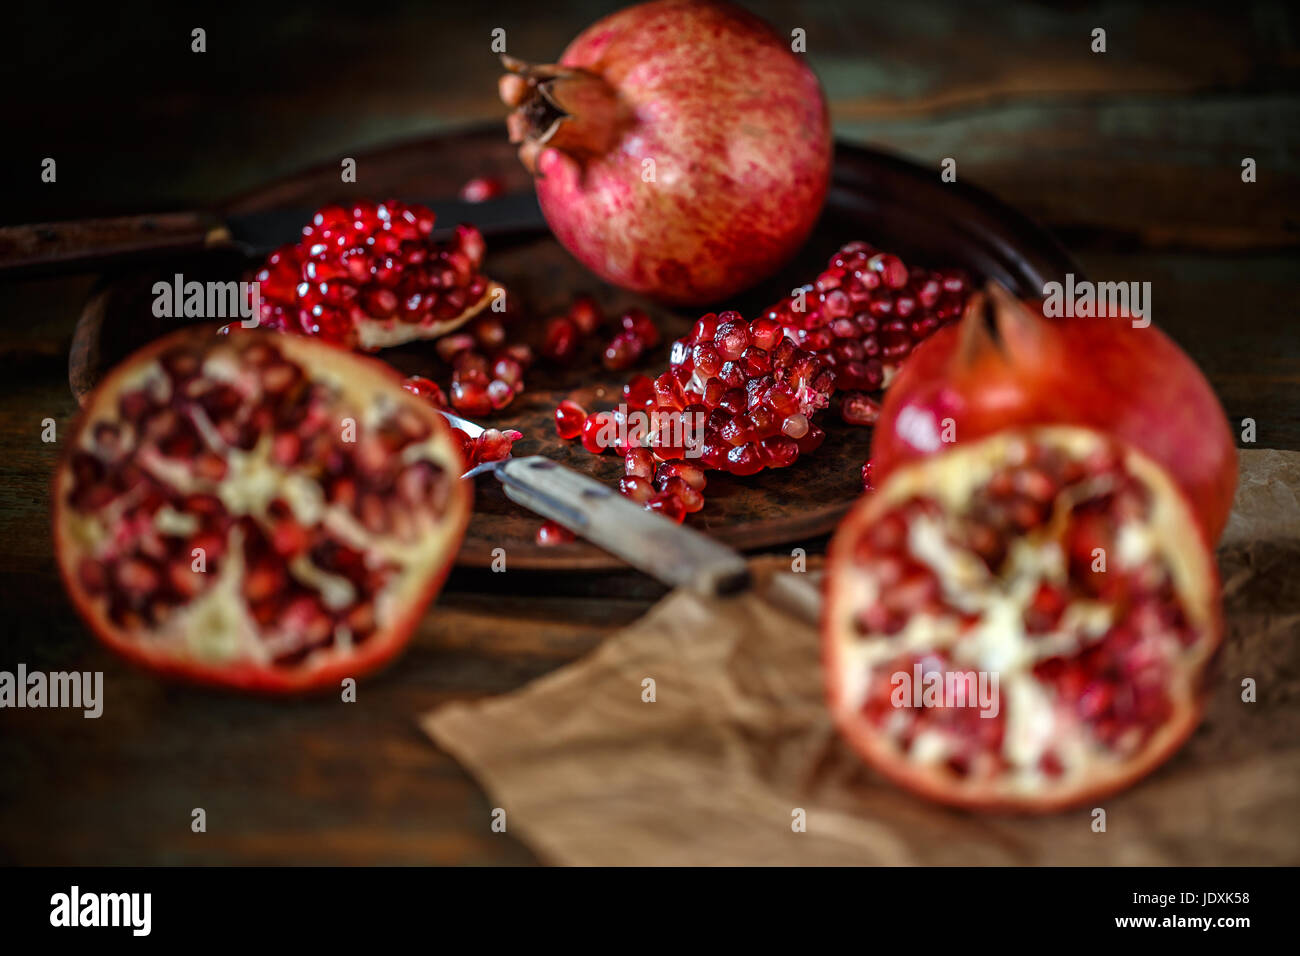 Fresh juicy pomegranate, whole and cut  on vintage background Stock Photo